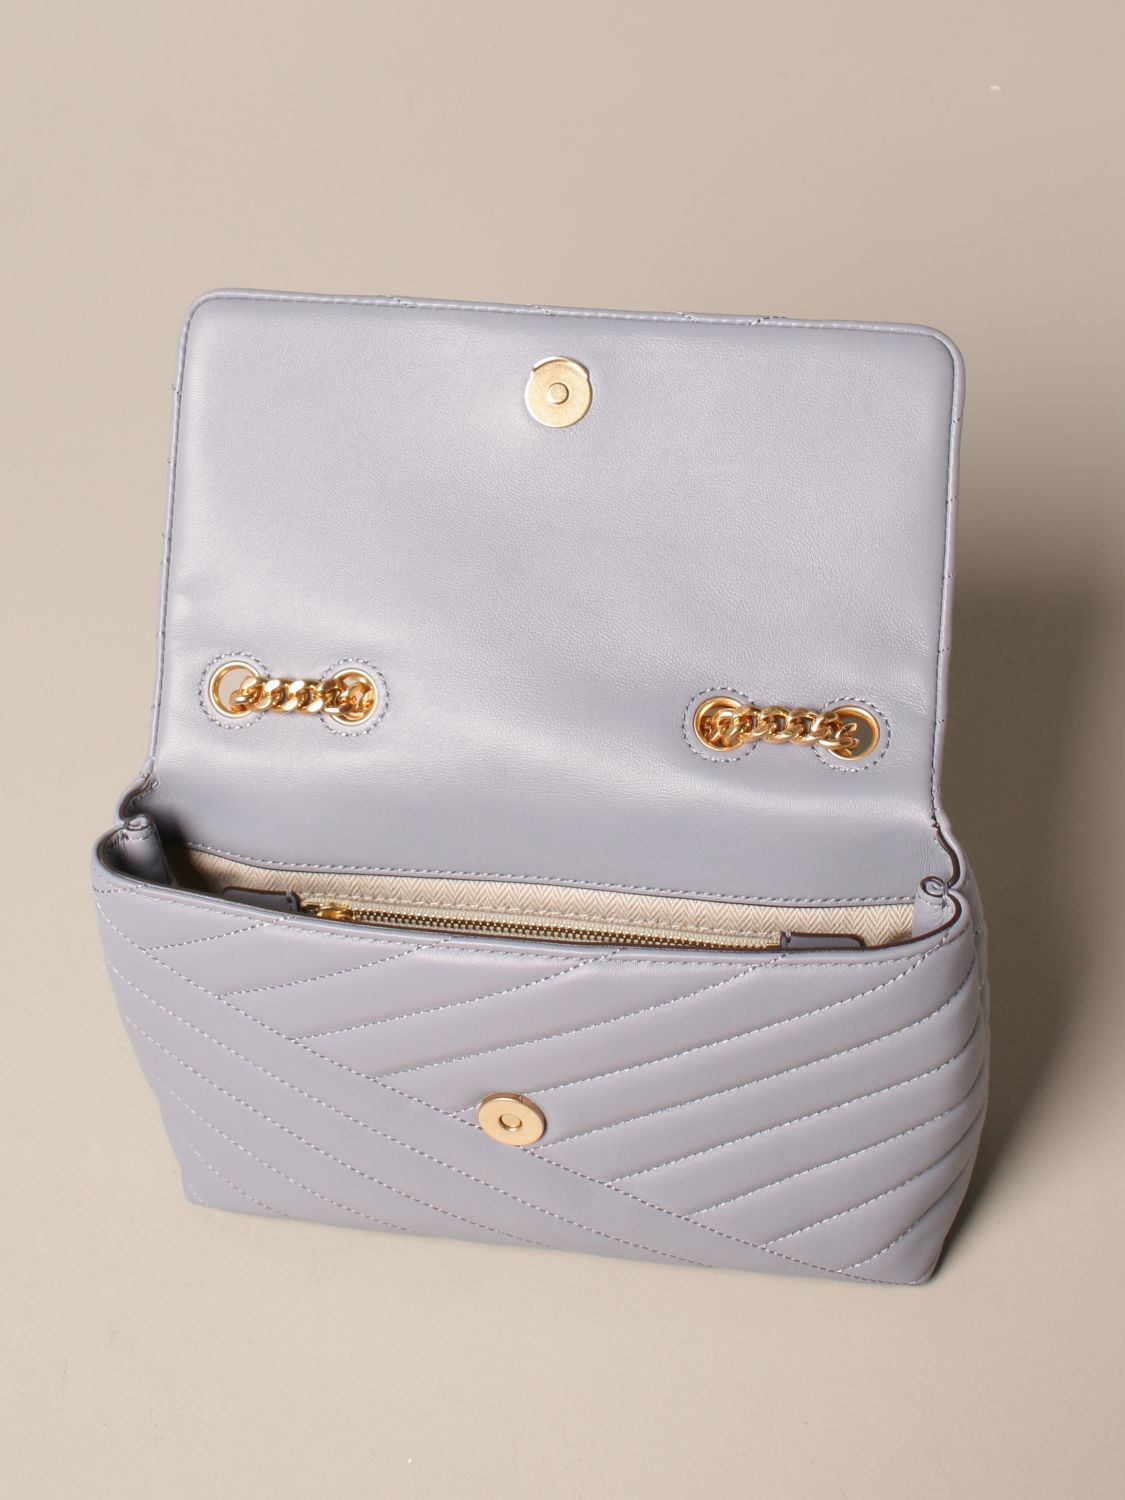 Crossbody bags Tory Burch: Kira Tory Burch bag in quilted leather dust 5